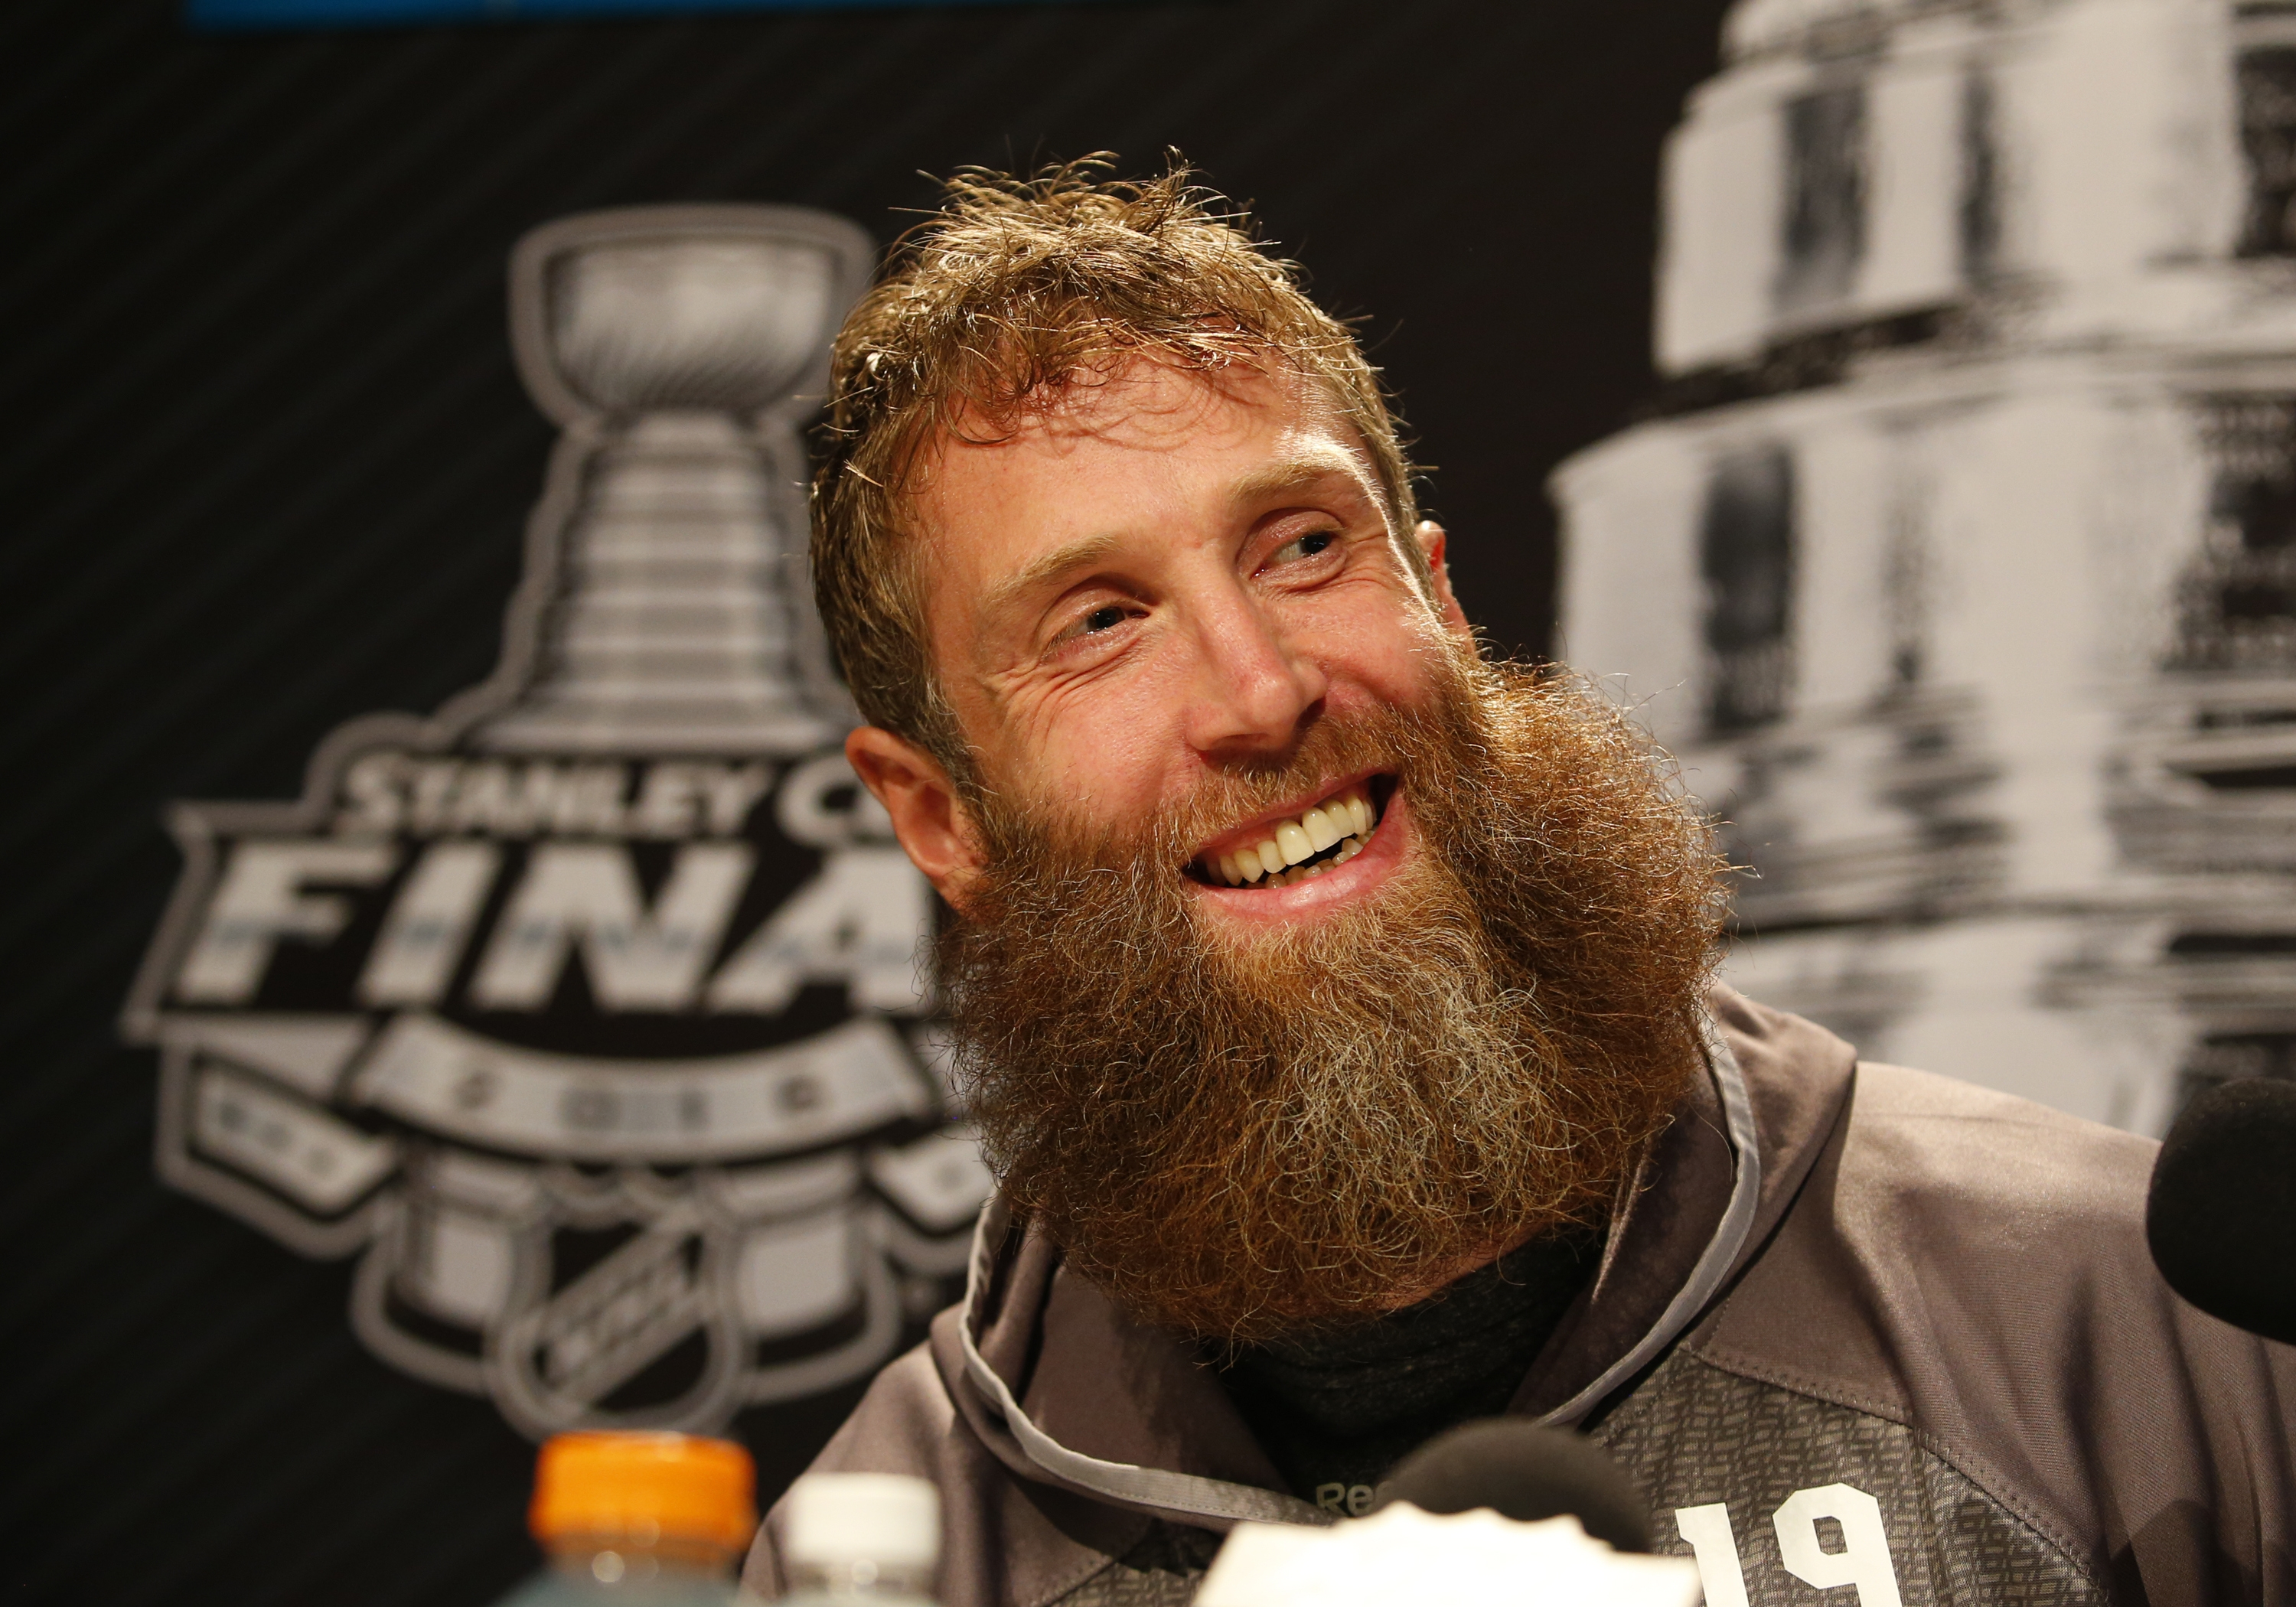 Joe Thornton of the Sharks said Sunday his playoff beard requires a lot of upkeep, including combing and regular oiling.